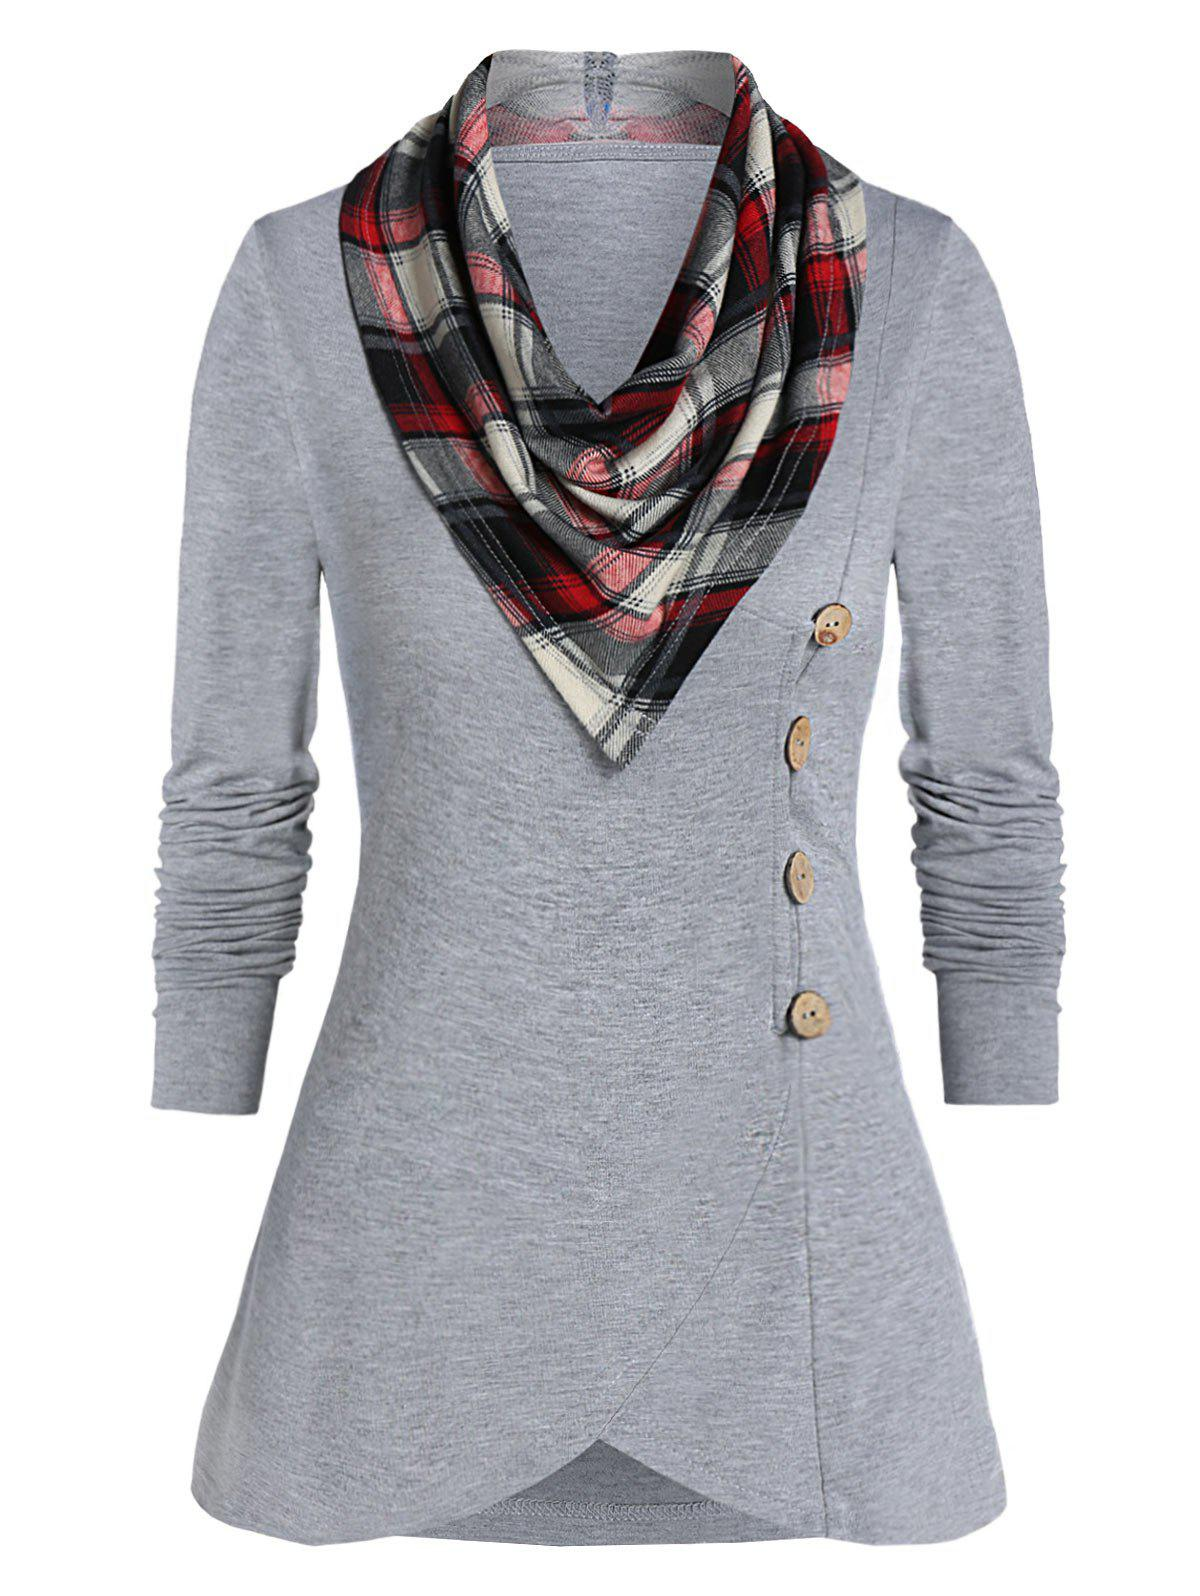 Store Long Sleeve Button T Shirt with a Cowl Neck